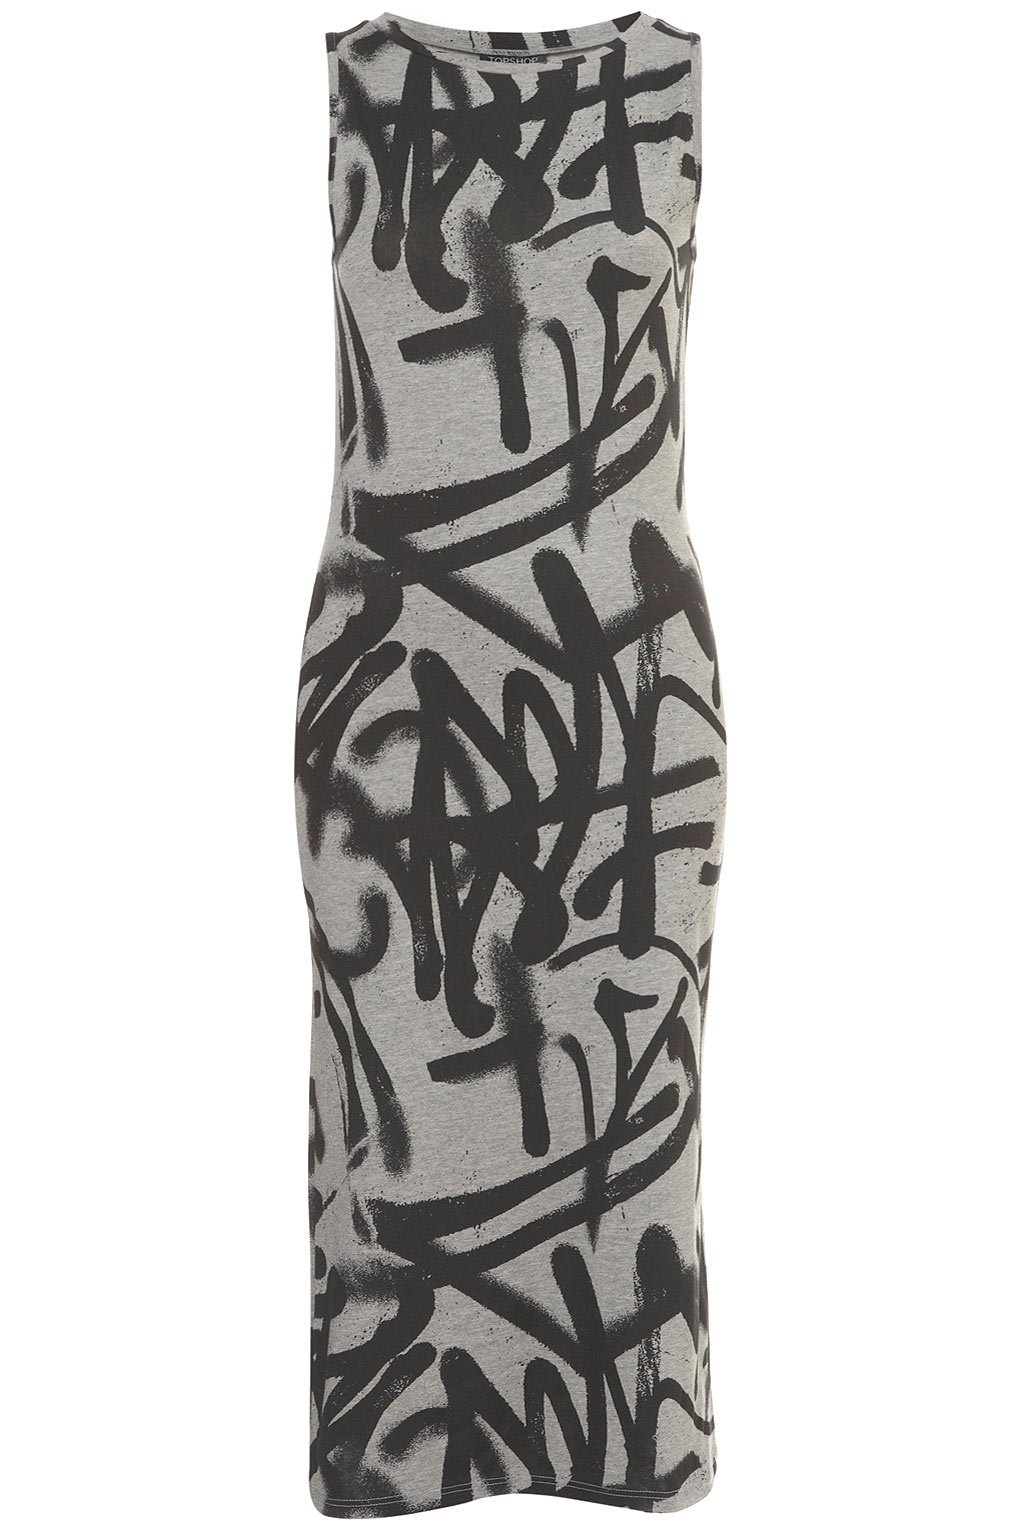 Topshop Graffiti Tank Midi Dress In Gray Lyst